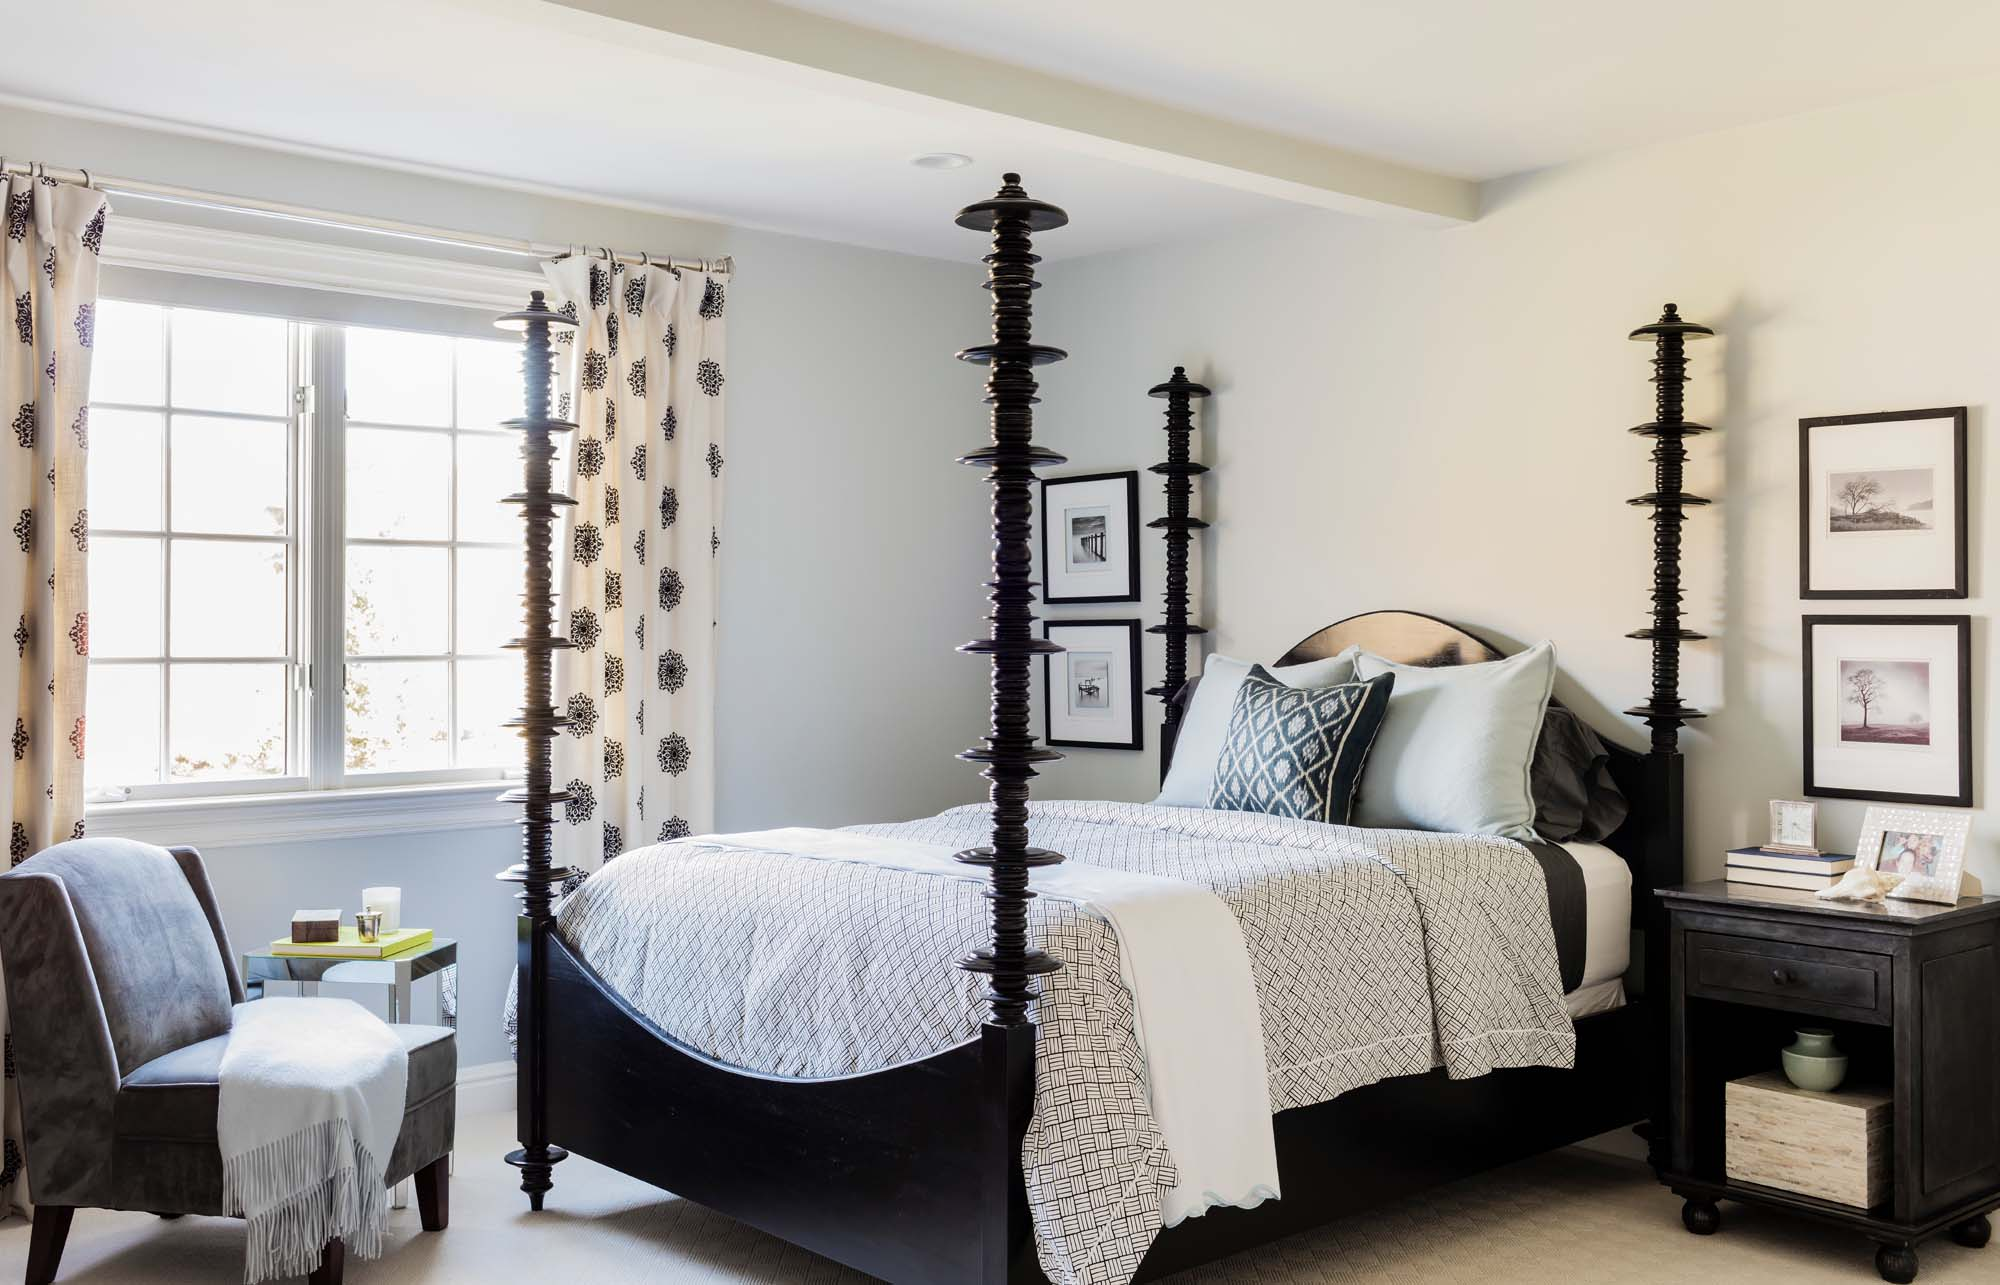 Bedroom with wooden bed, bedside table, chair, and frames on the wall, anthropologie, black bed, matouk, matouk bedding, black and white, guest bedroom